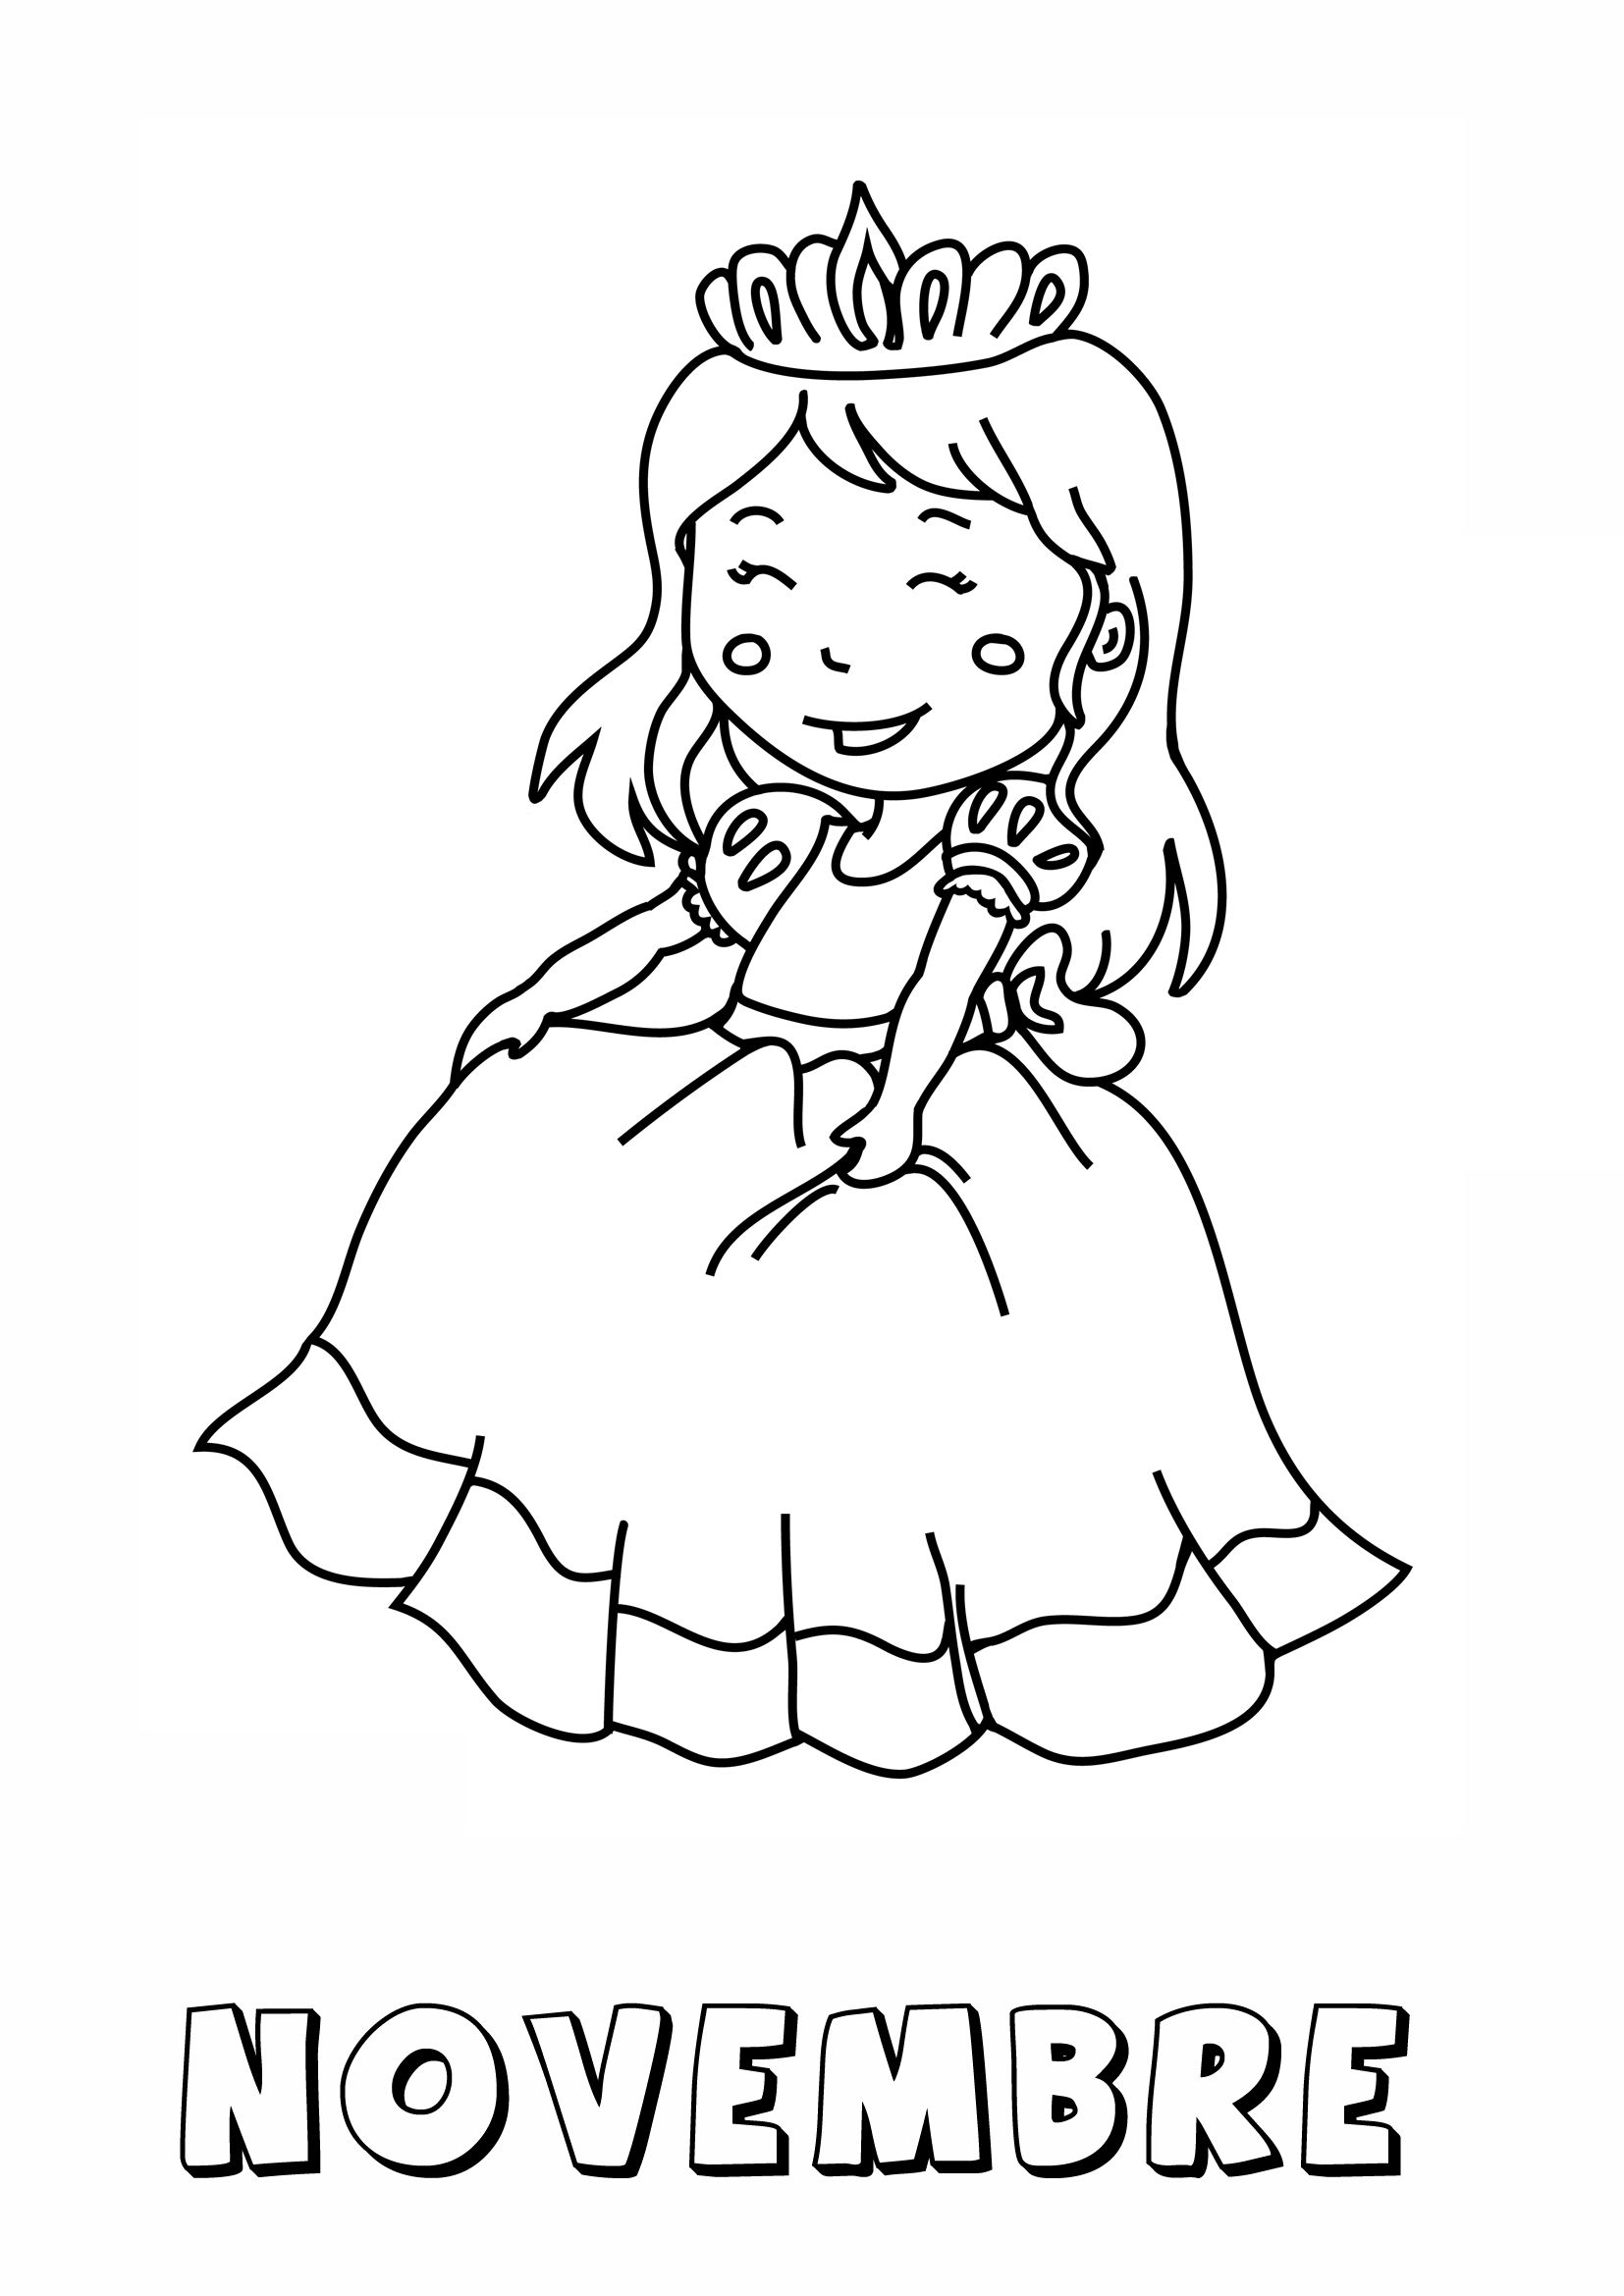 Coloriages de novembre ms gs 2013 2014 ch teau chevalier et princesses disney - Coloriage chateau de princesse ...